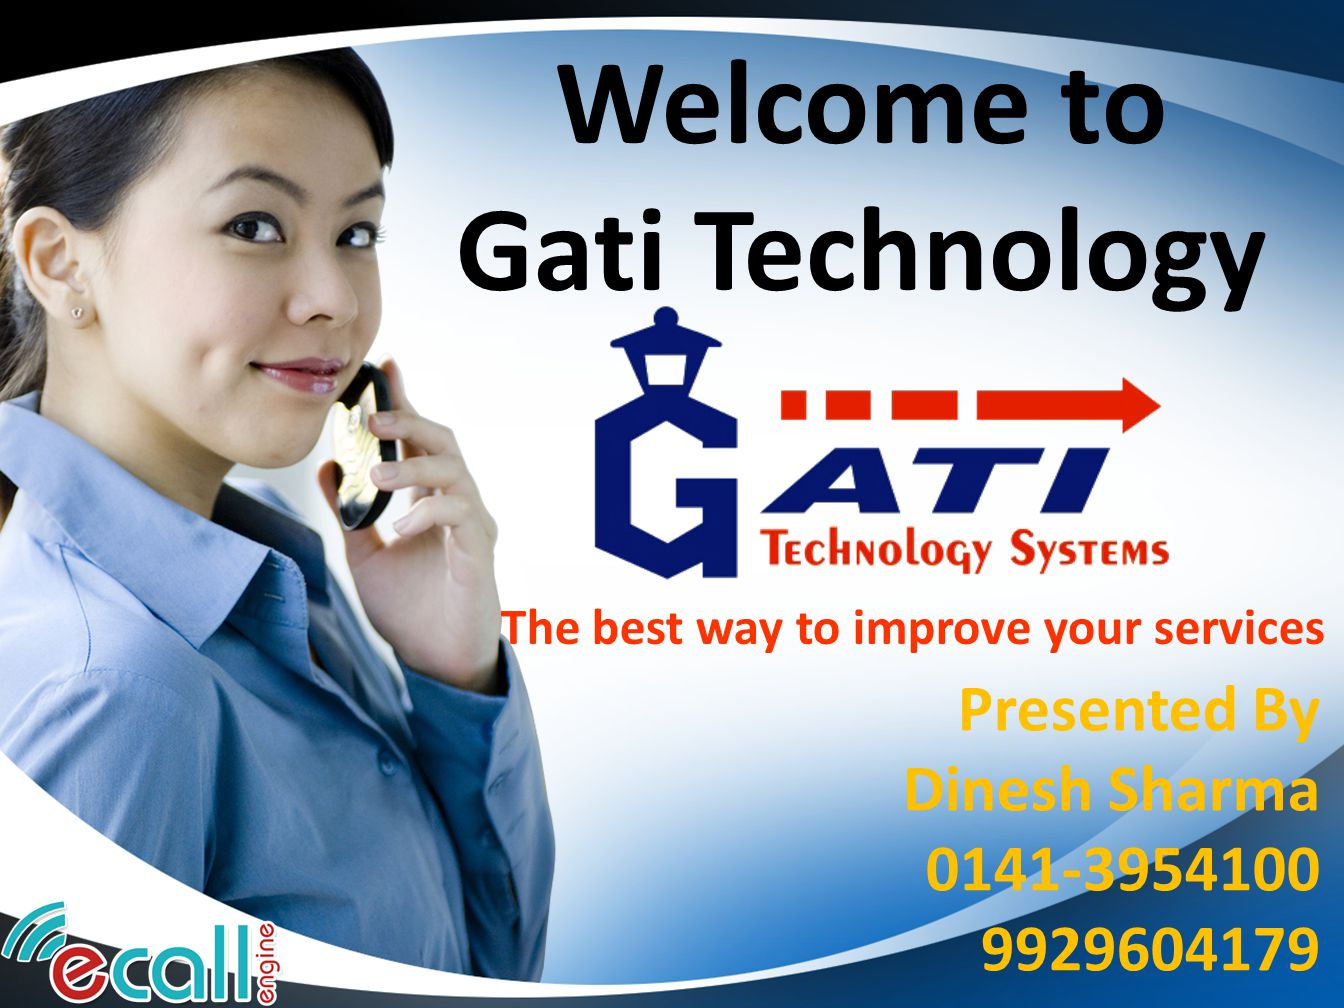 Welcome to Gati Technology Presented By Dinesh Sharma 0141-3954100 9929604179 The best way to improve your services